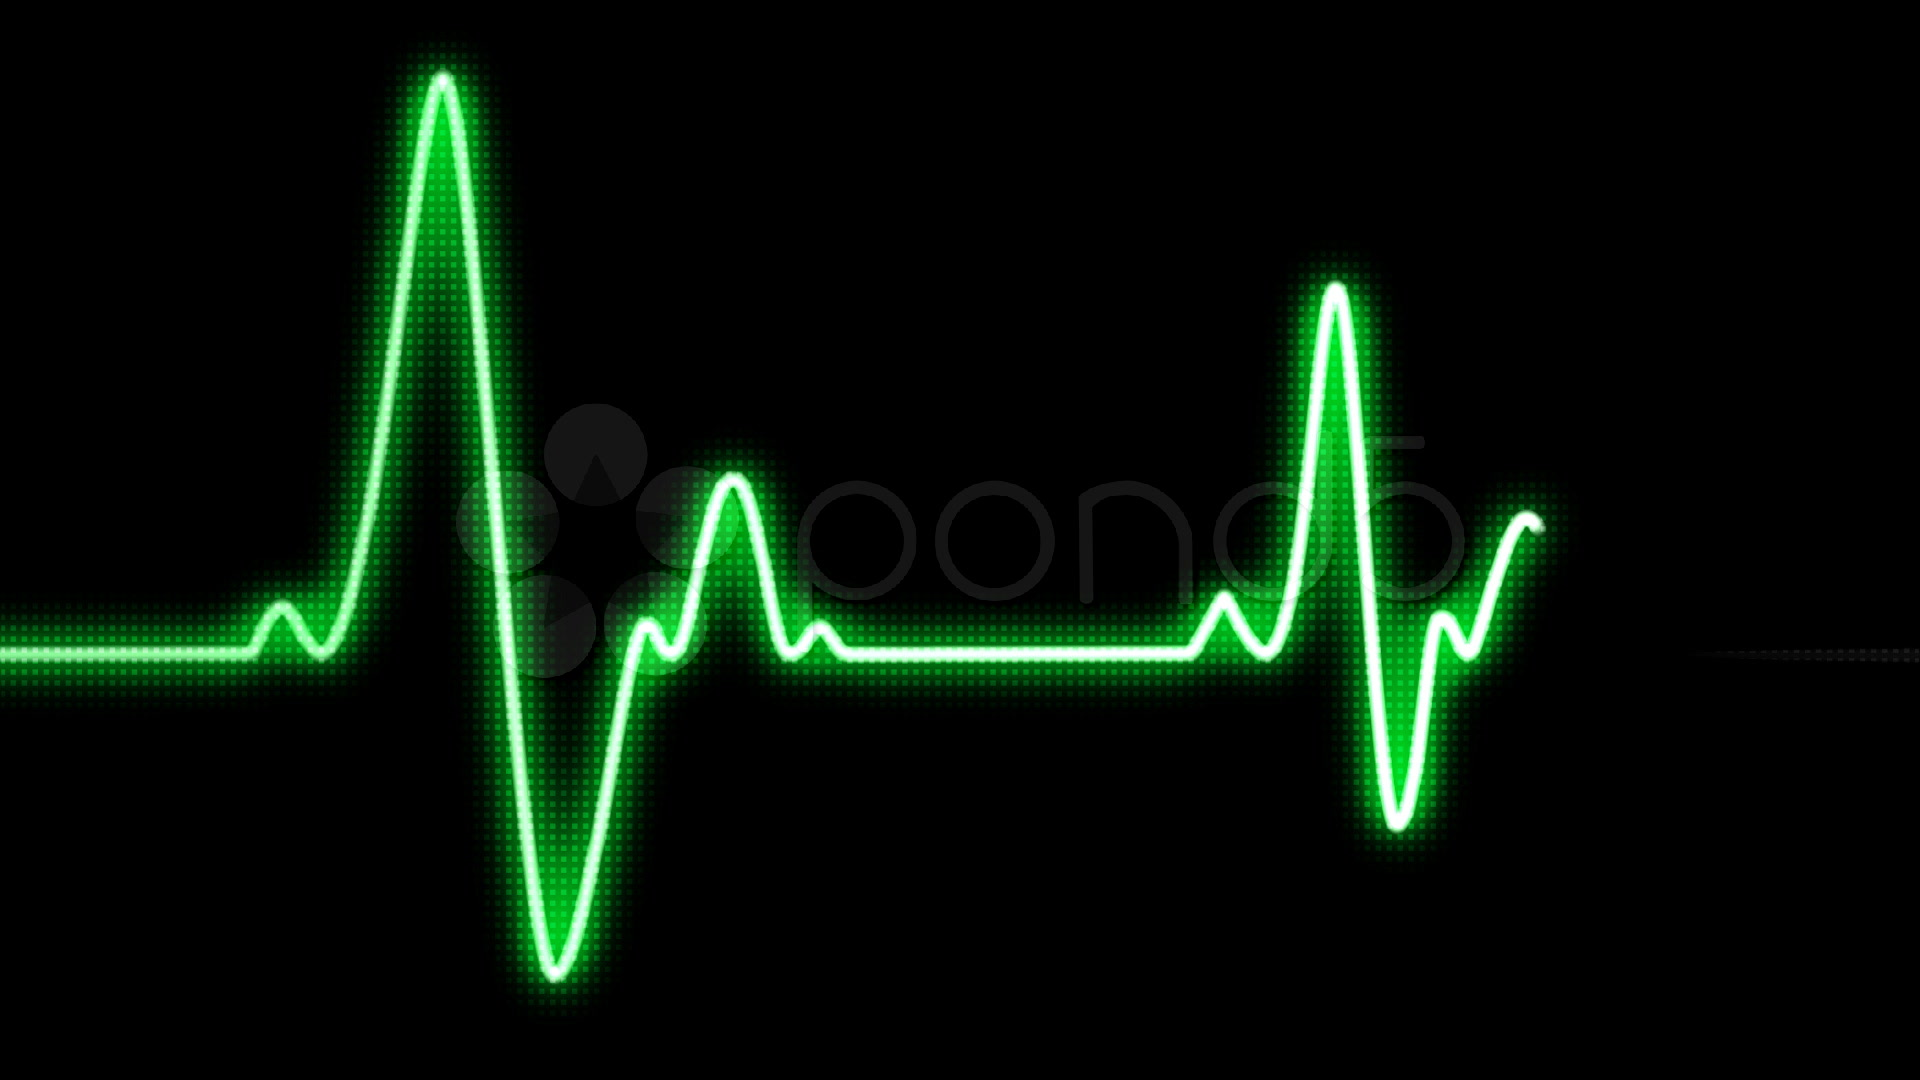 Heart Beat Monitor Clipart - Clipart Kid